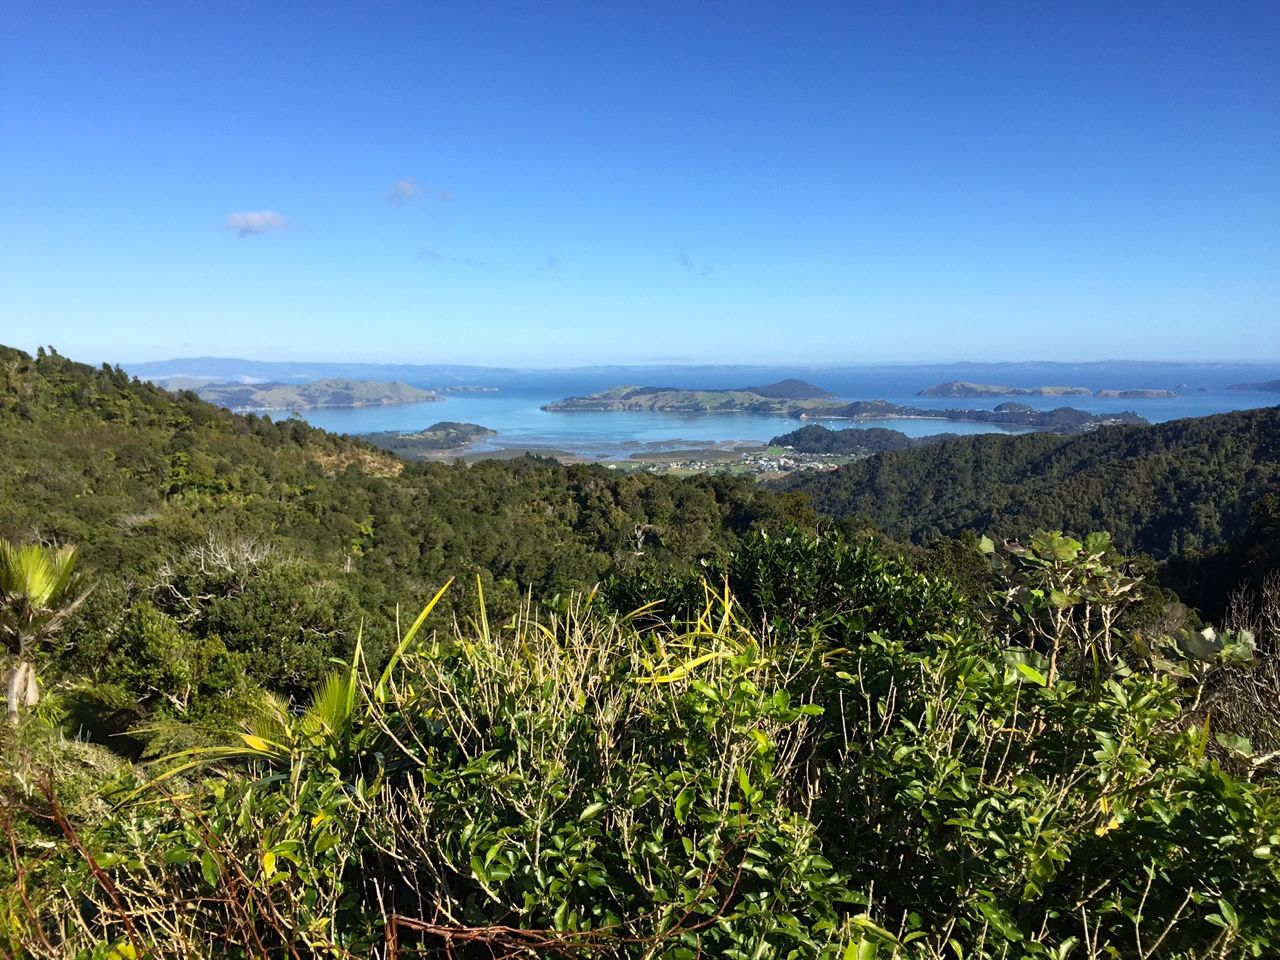 I know it looks like a postcard but I took this picture with my phone. That's the South Pacific in the distance.